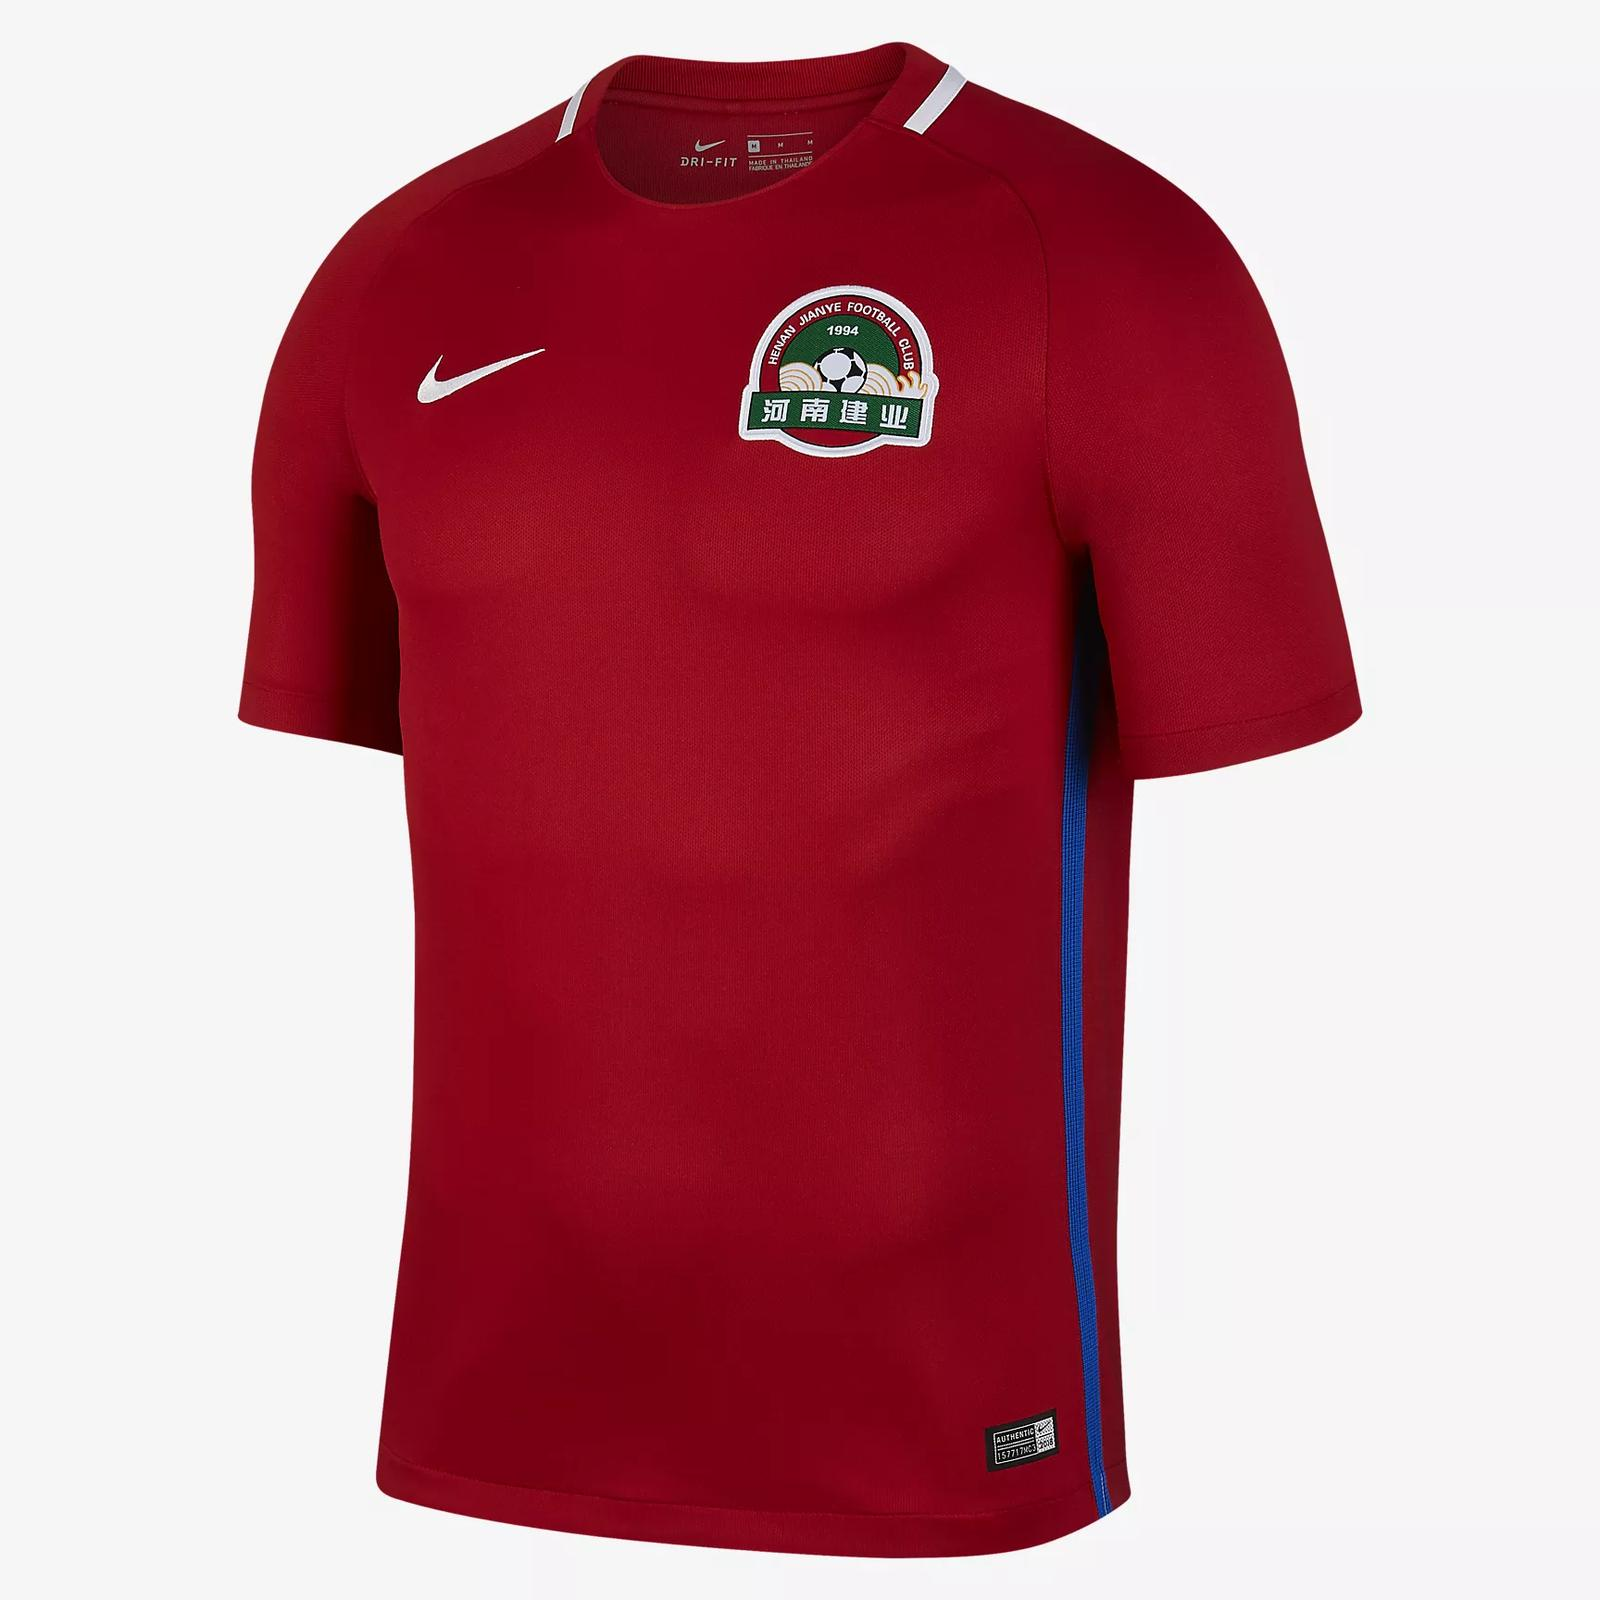 Yükle (1600x1600)Henan Jianye 2018 19 Nike Home Kit 17 18 Kits Football  shirt blogkit 124a0cbcb